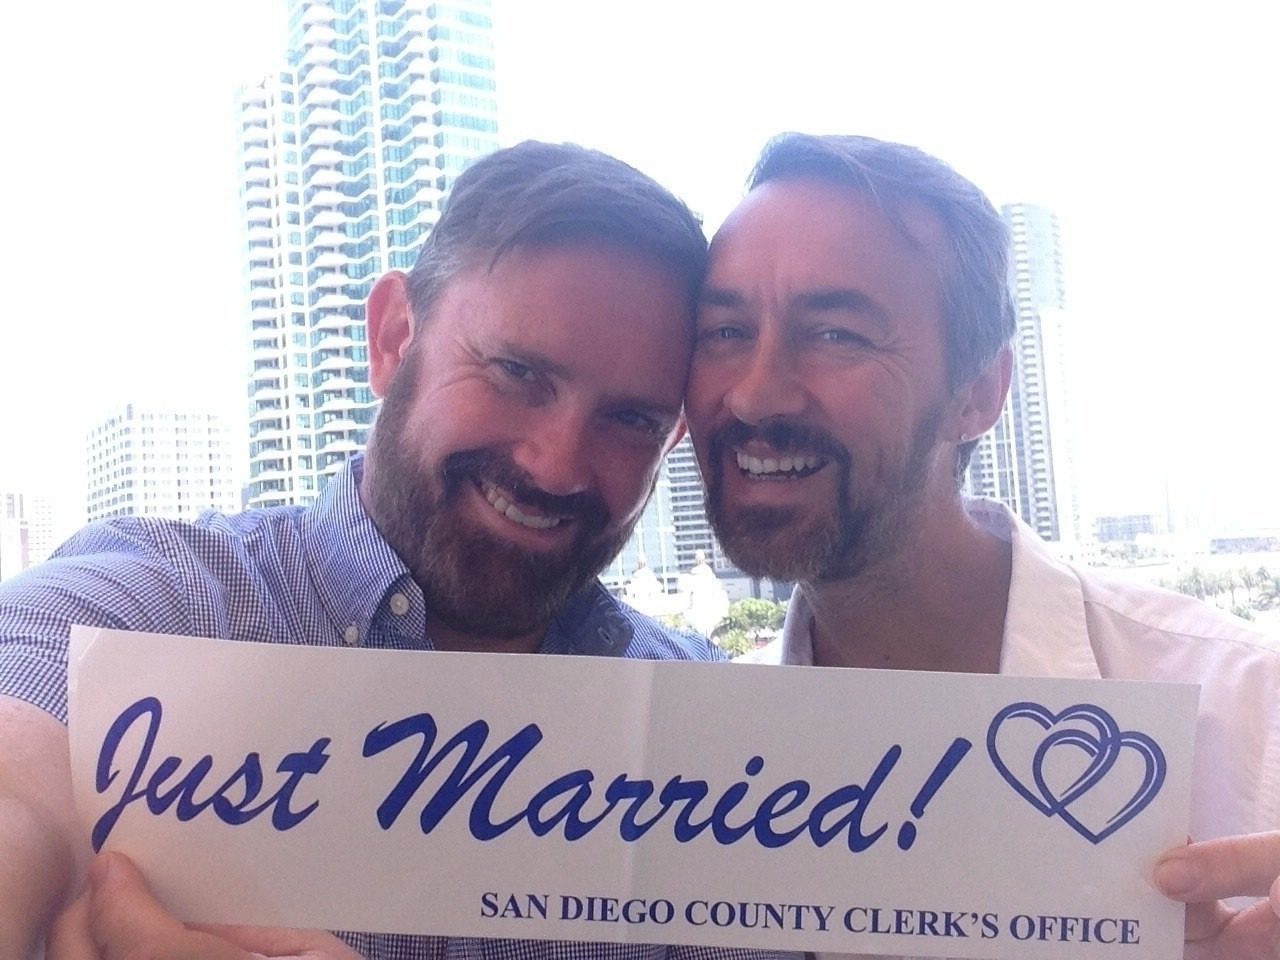 Congratulations to the happy couple, Kenneth and Wallace! After 12 years together they've finally consummated their love for each other in San Diego!     We hope they enjoy their Palm Springs honeymoon, and wish them the best for many more years to come xx